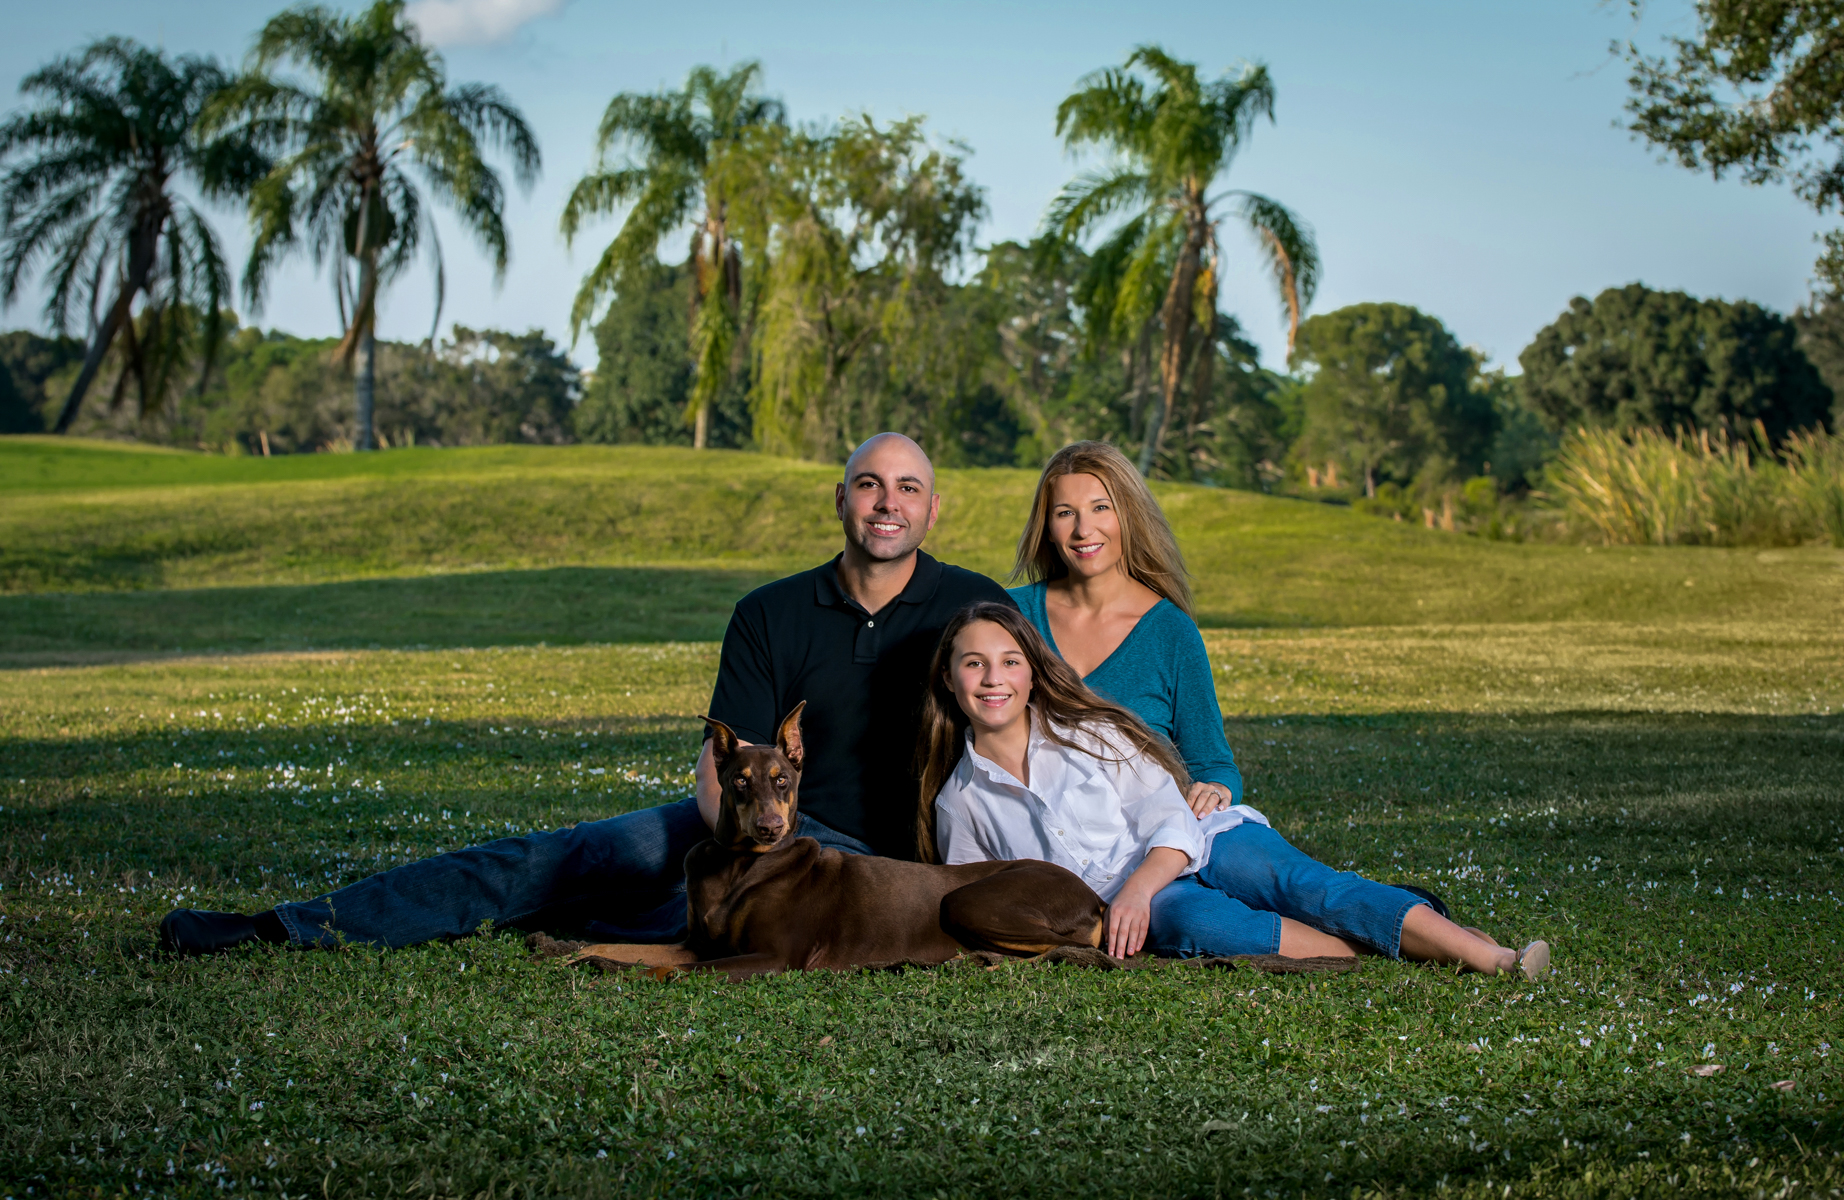 Unique location sessions for family portraits. Call us at 561-307-9875.